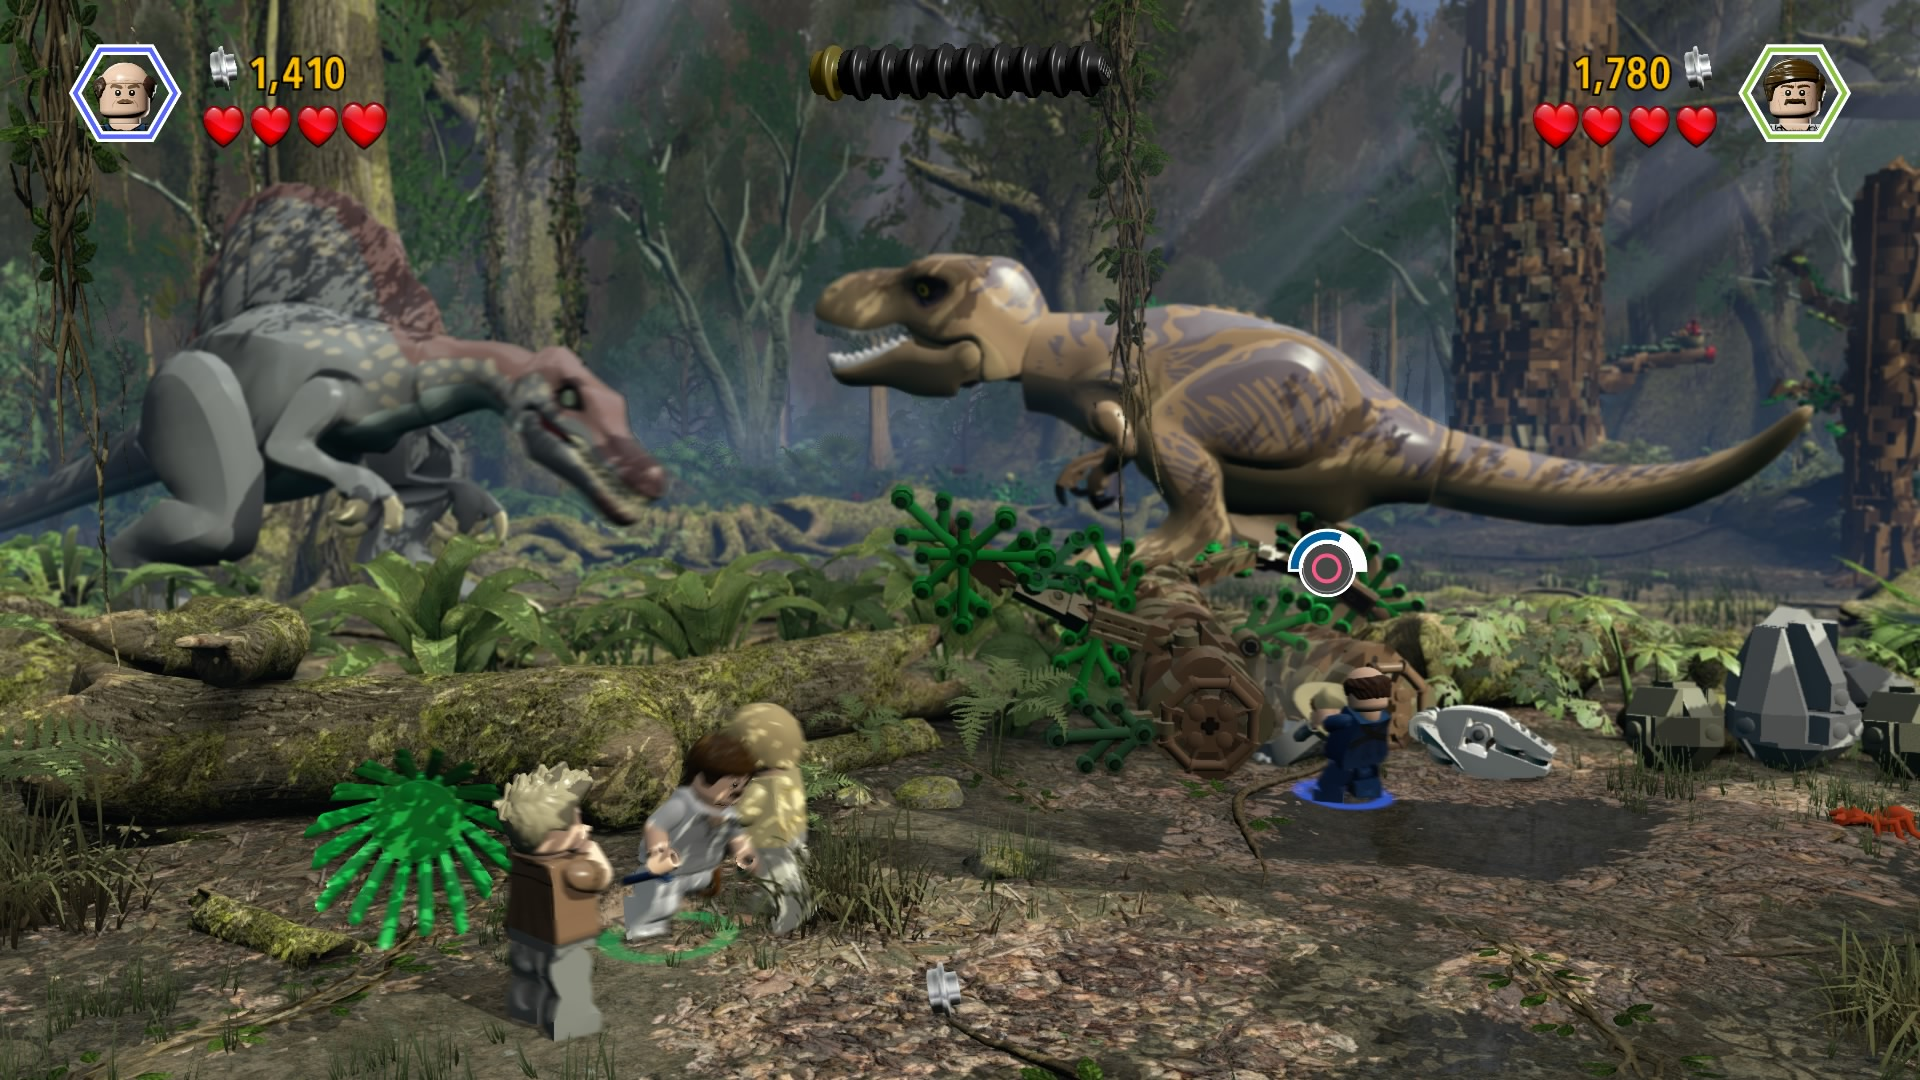 Cute Matching Computer Wallpapers Review Lego Jurassic World